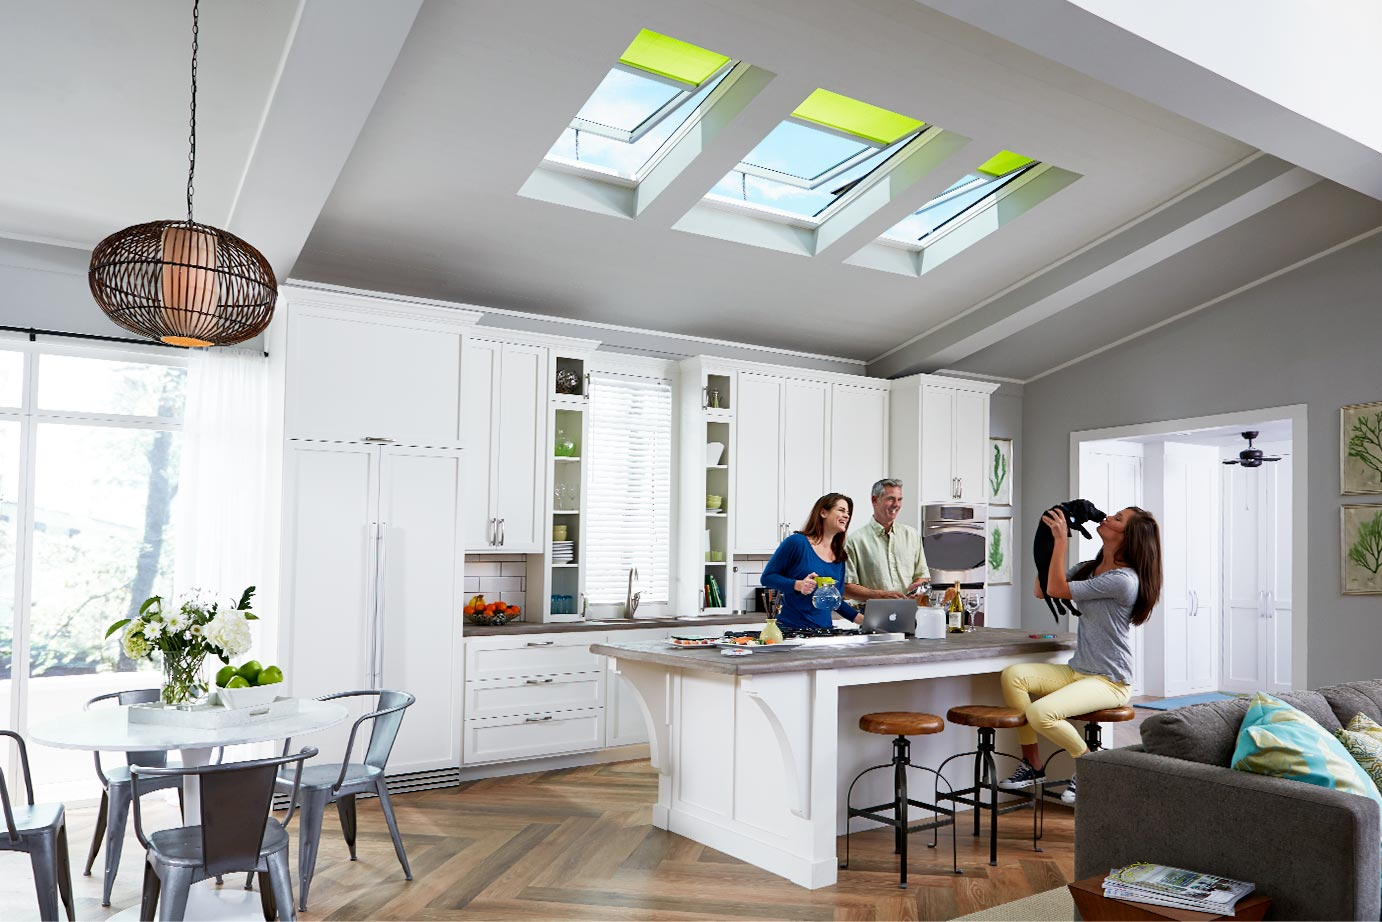 kitchen green blinds?h=922&la=en&w=1382&cc=grid_12&key=145917965341898&sw=960 velux frequently asked questions velux klf 100 wiring diagram at mifinder.co